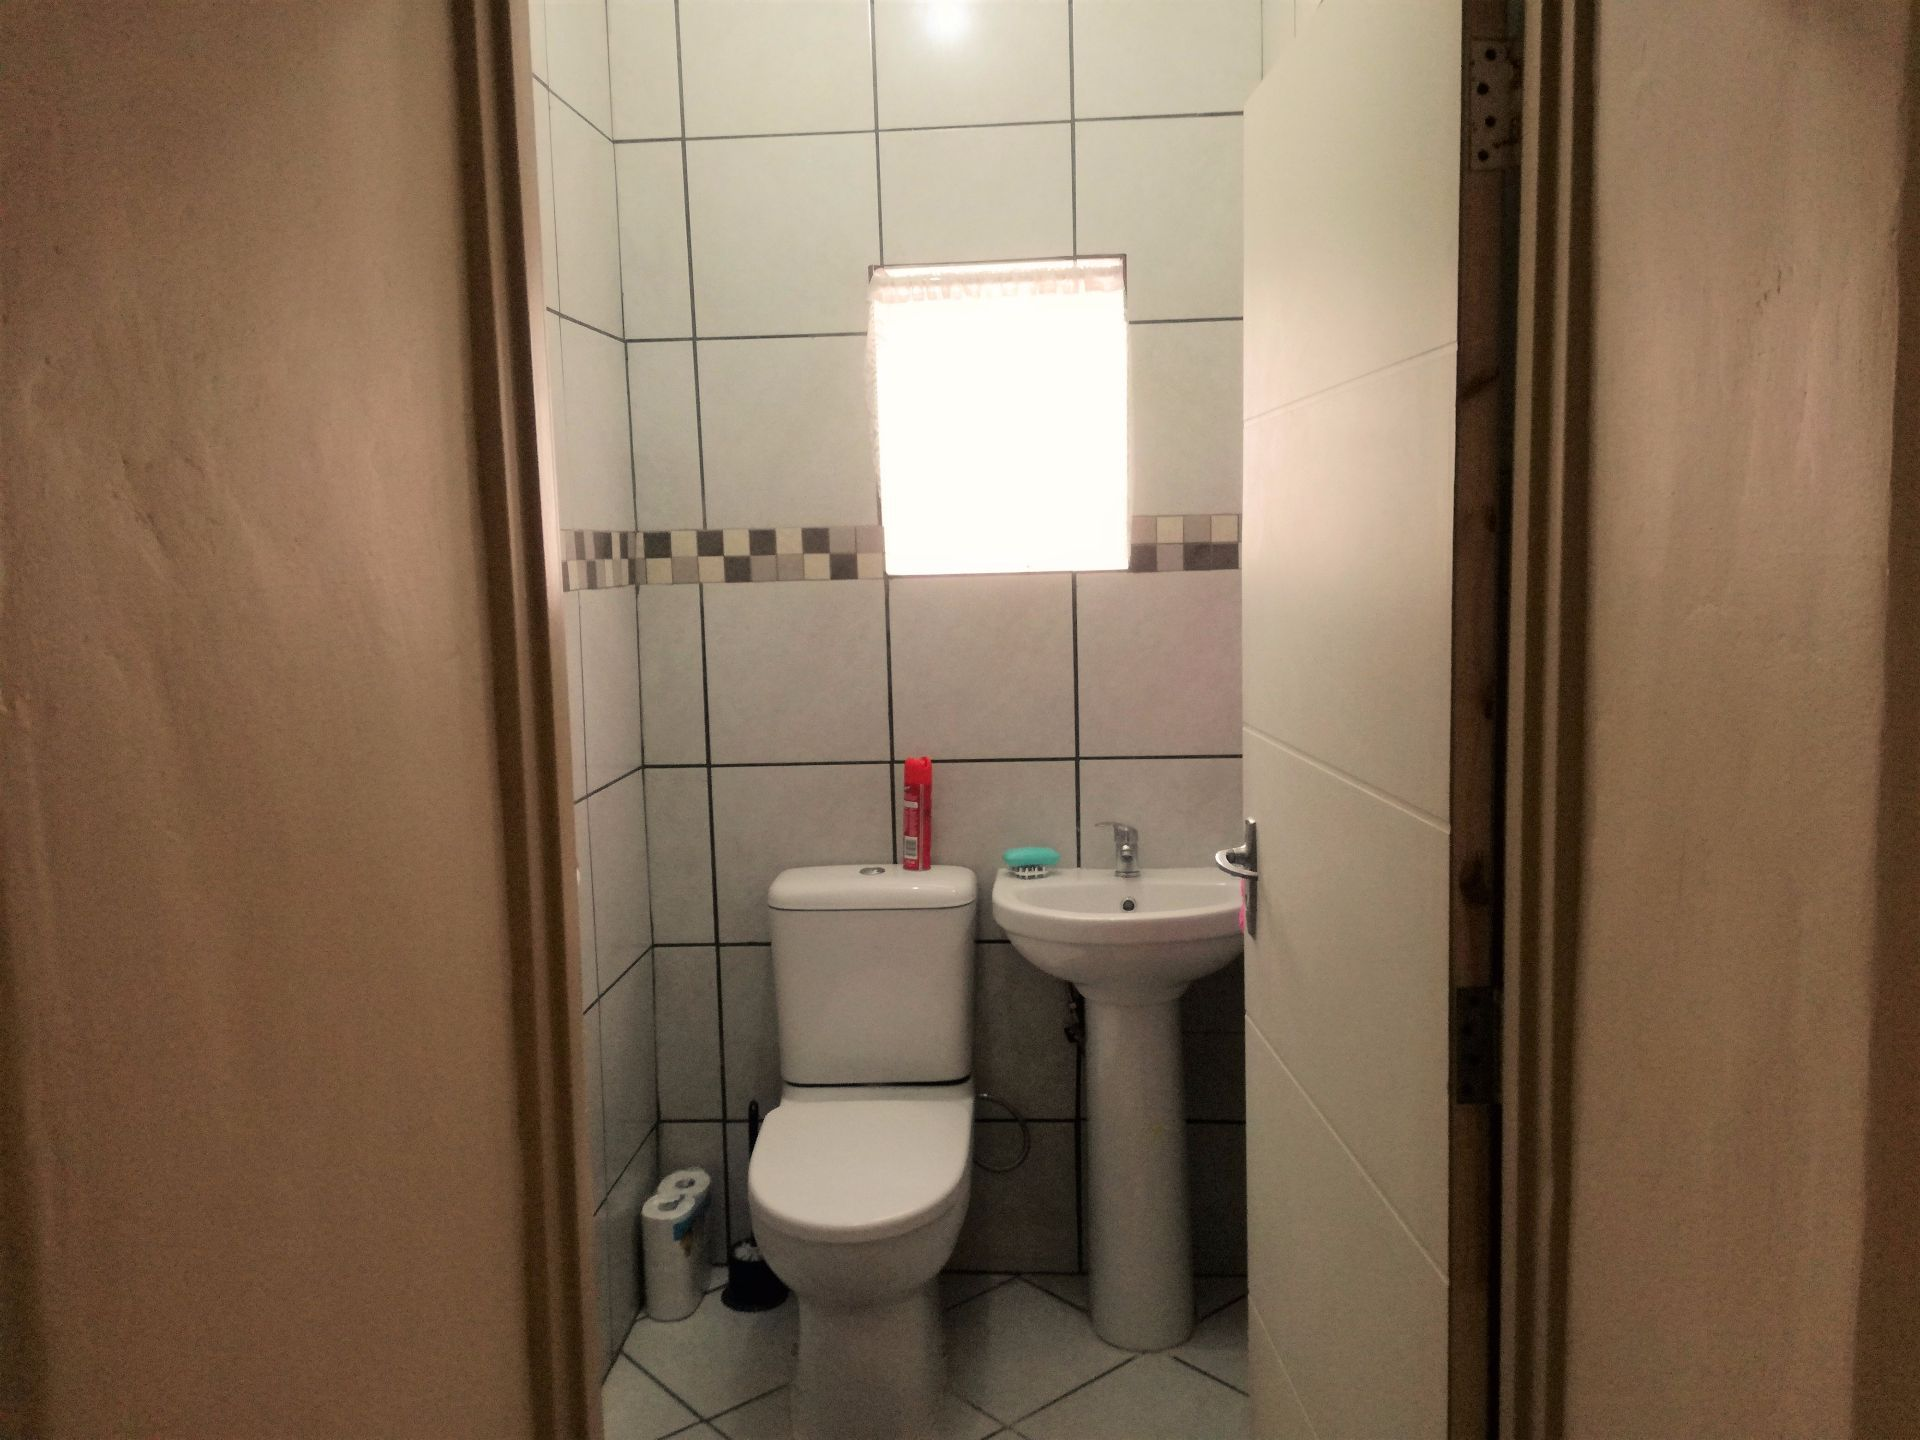 Potchefstroom Central property for sale. Ref No: 13623596. Picture no 13